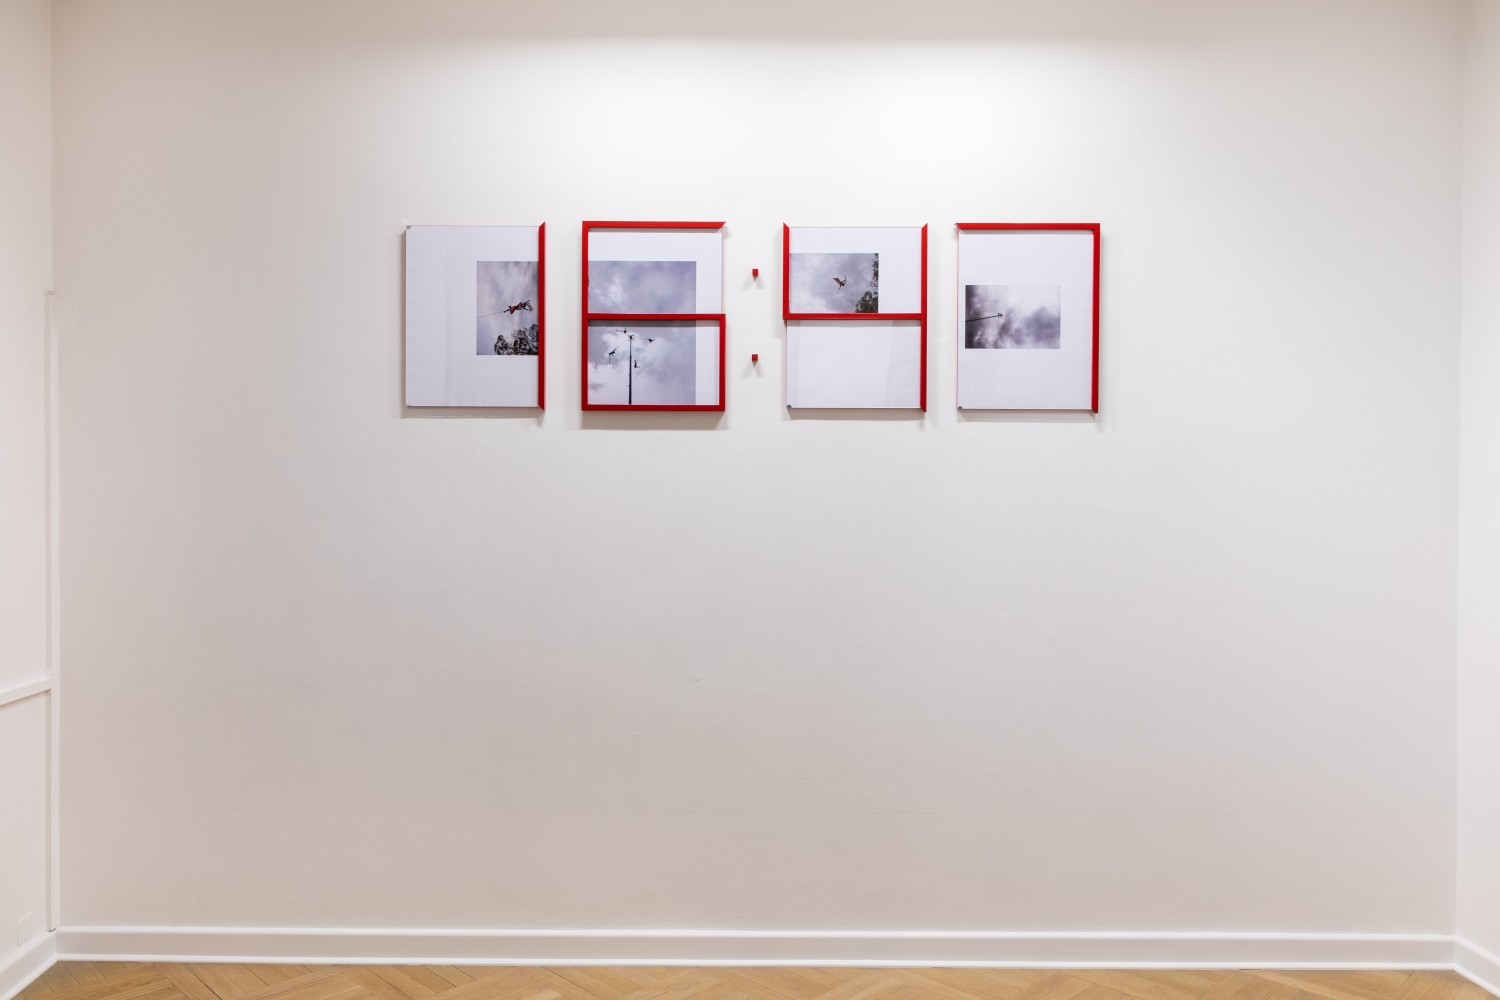 """The installation """"Sistema en tiempo real"""" by the artist Adriana Lara is a four-part collage series whose framings cut through the images to visualize numbers in a time display. The numbers in the piece make palpable ideas of interactivity in our perception of time."""